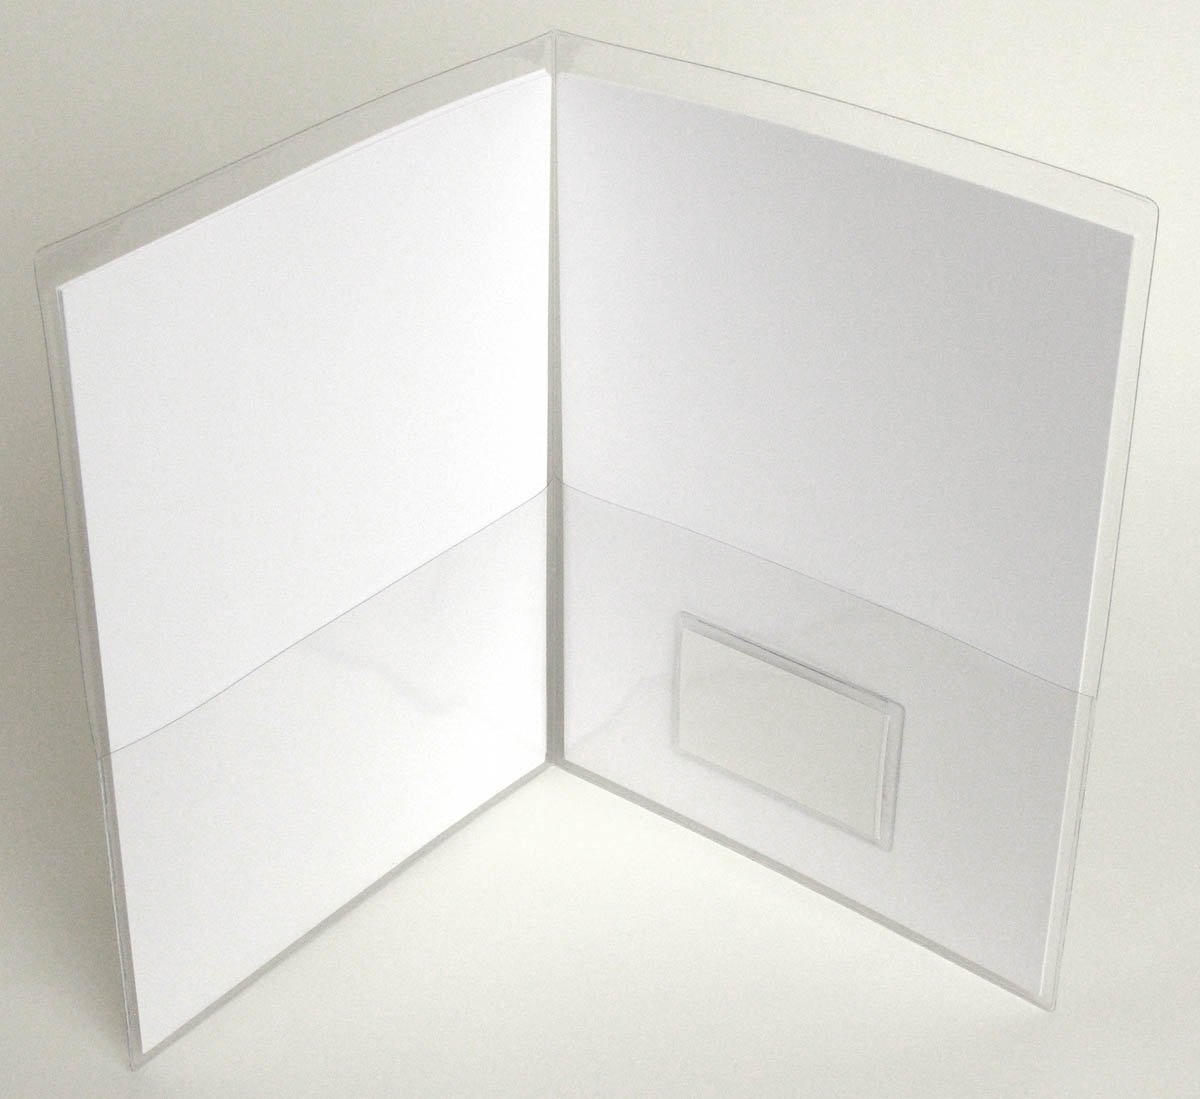 StoreSMART - Clear Plastic Folder with 2 pockets - with Business Card Holder on inside - 100-Pack - 9.5'' x 11.75'' - R935N-100